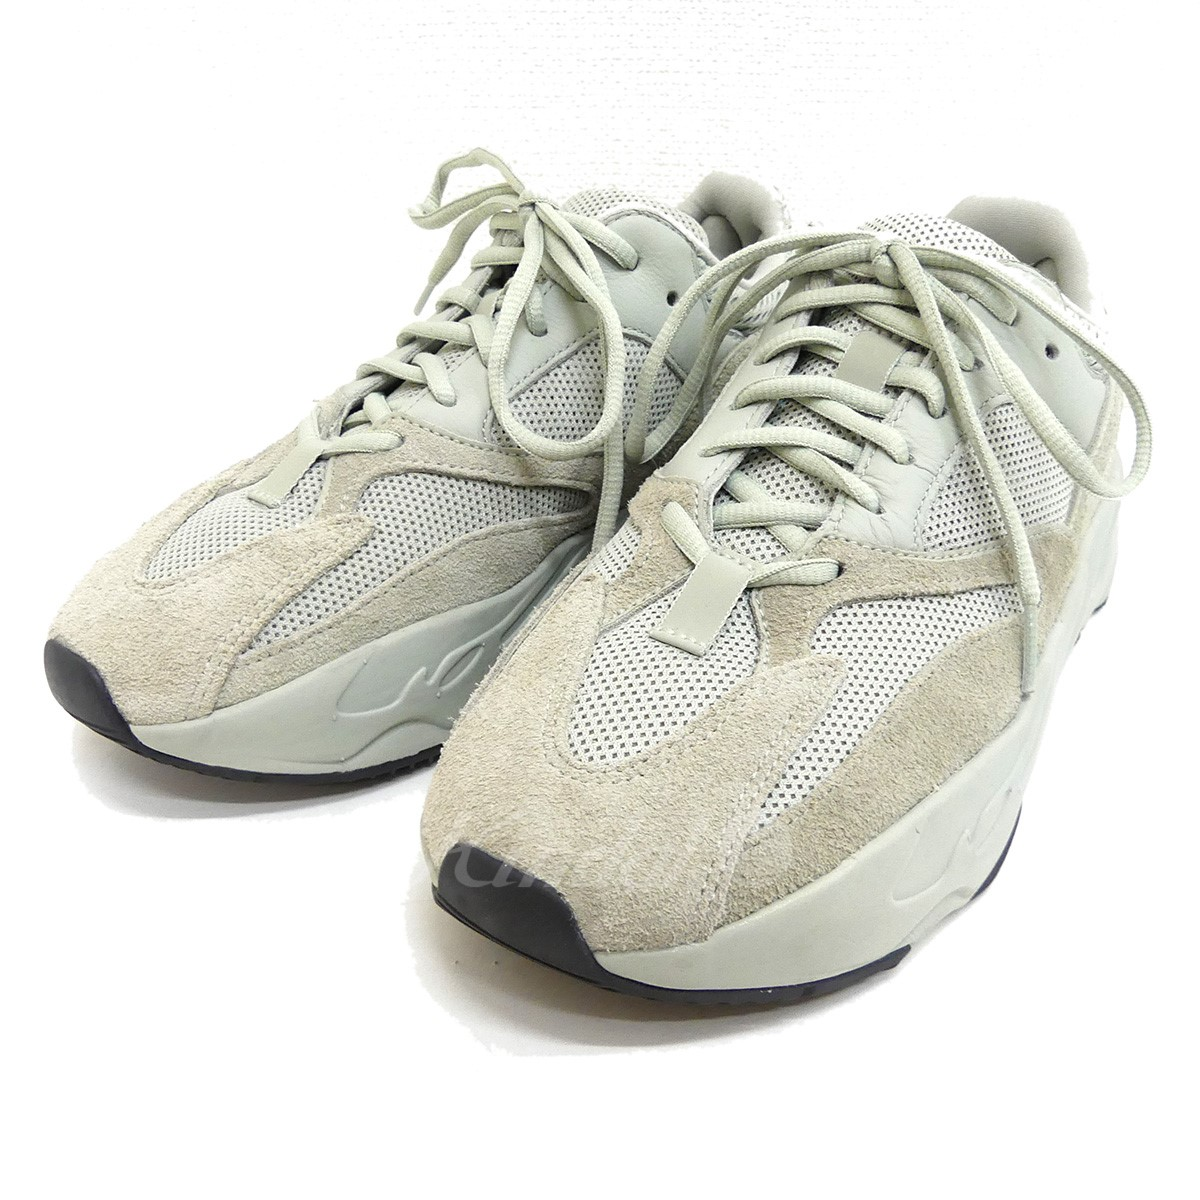 lowest price aliexpress more photos adidas originals by KANYE WEST sneakers YEEZY BOOST 700 EG7487 salt size:  25. 5 (Adidas originals by Kanie waist)